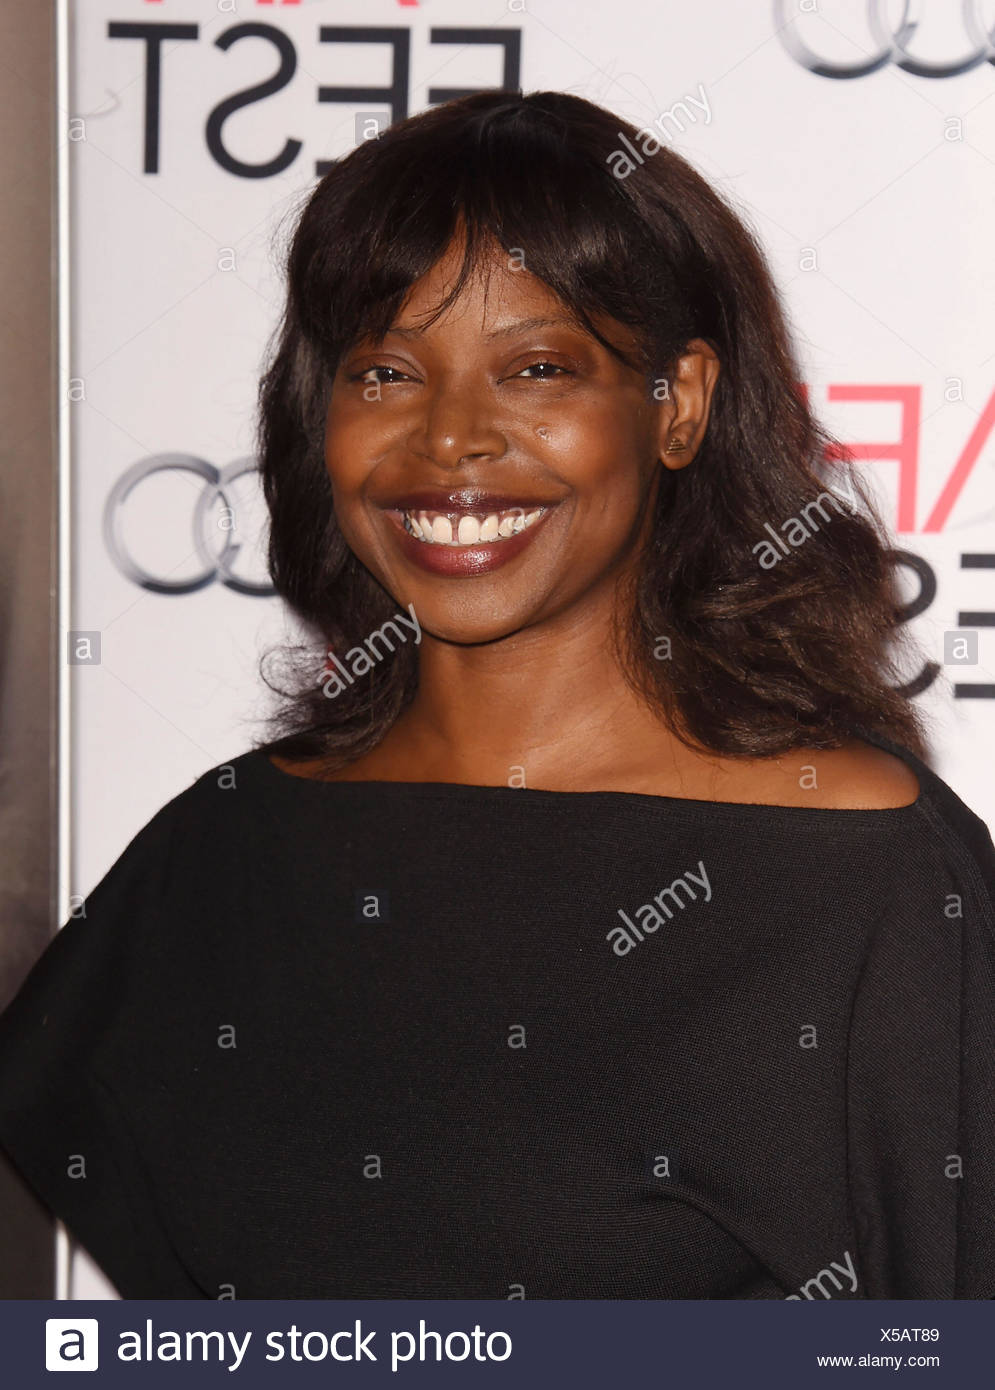 AFI FEST Director Jacqueline Lyanga arrives at the AFI FEST 2015 Presented by Audi Tribute to Charlotte Rampling and Tom Courtenay event at the TCL Chinese Theatre on November 11, 2015 in Hollywood, California., Additional-Rights-Clearances-NA - Stock Image